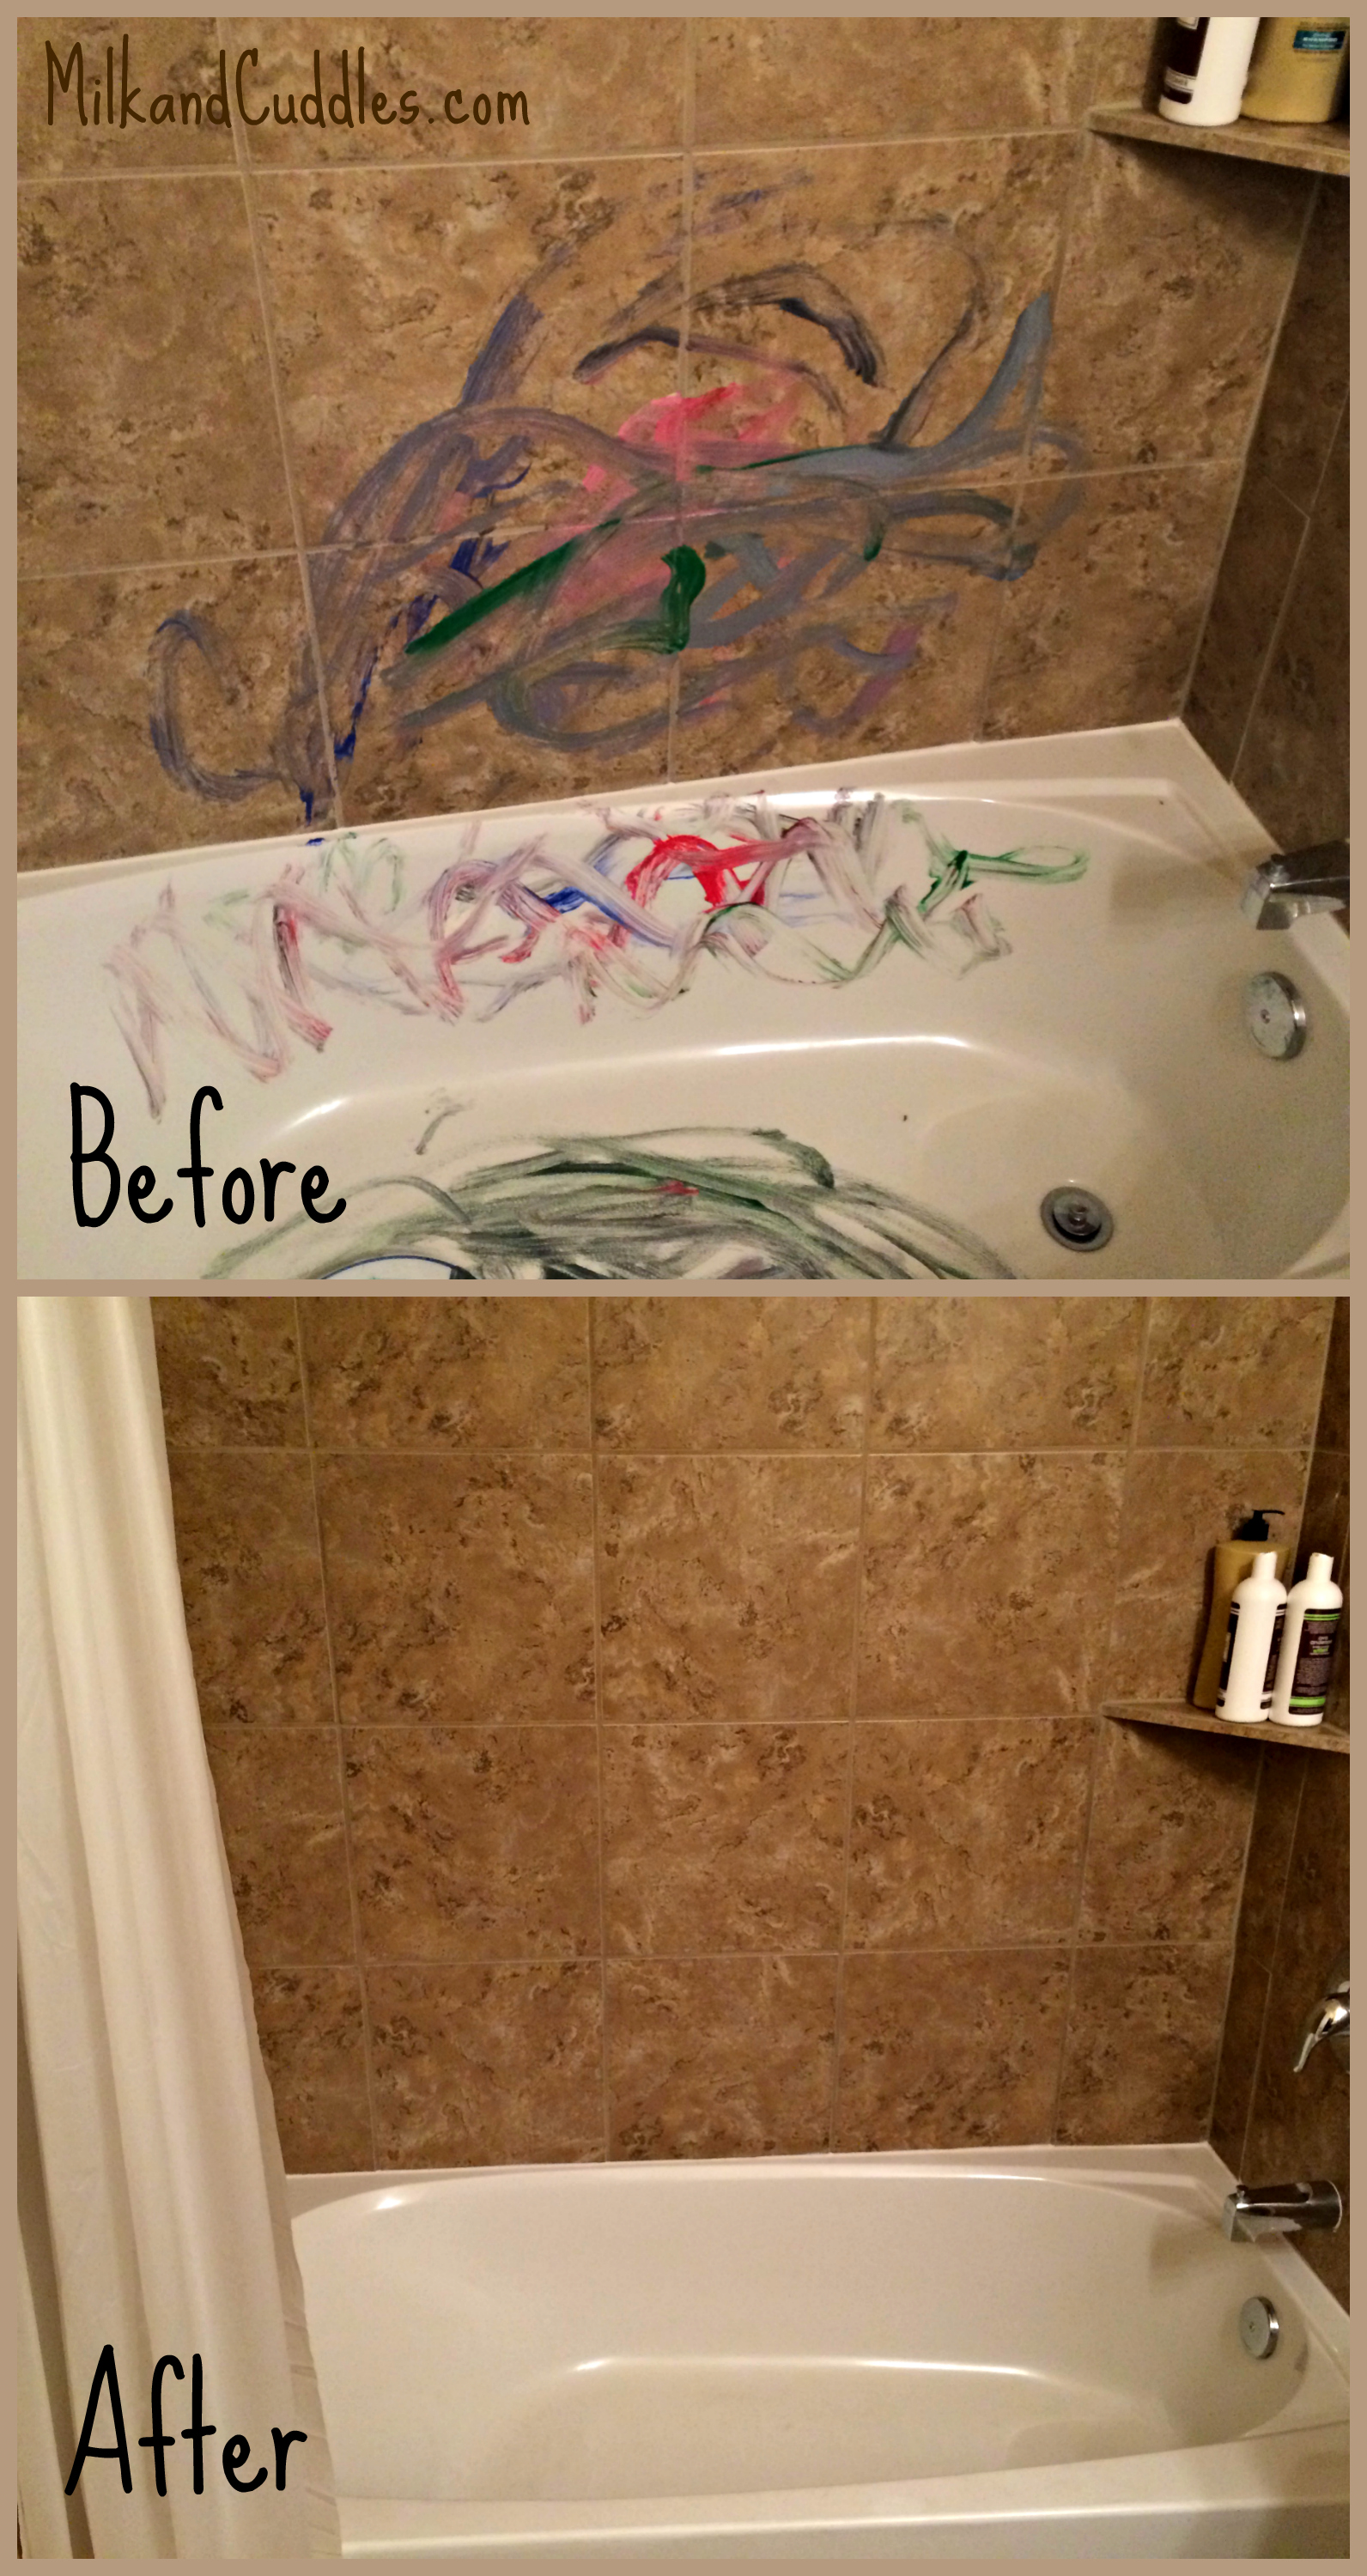 Bathroom Before After A Scrubbing Bubbles Challenge Everyday Best